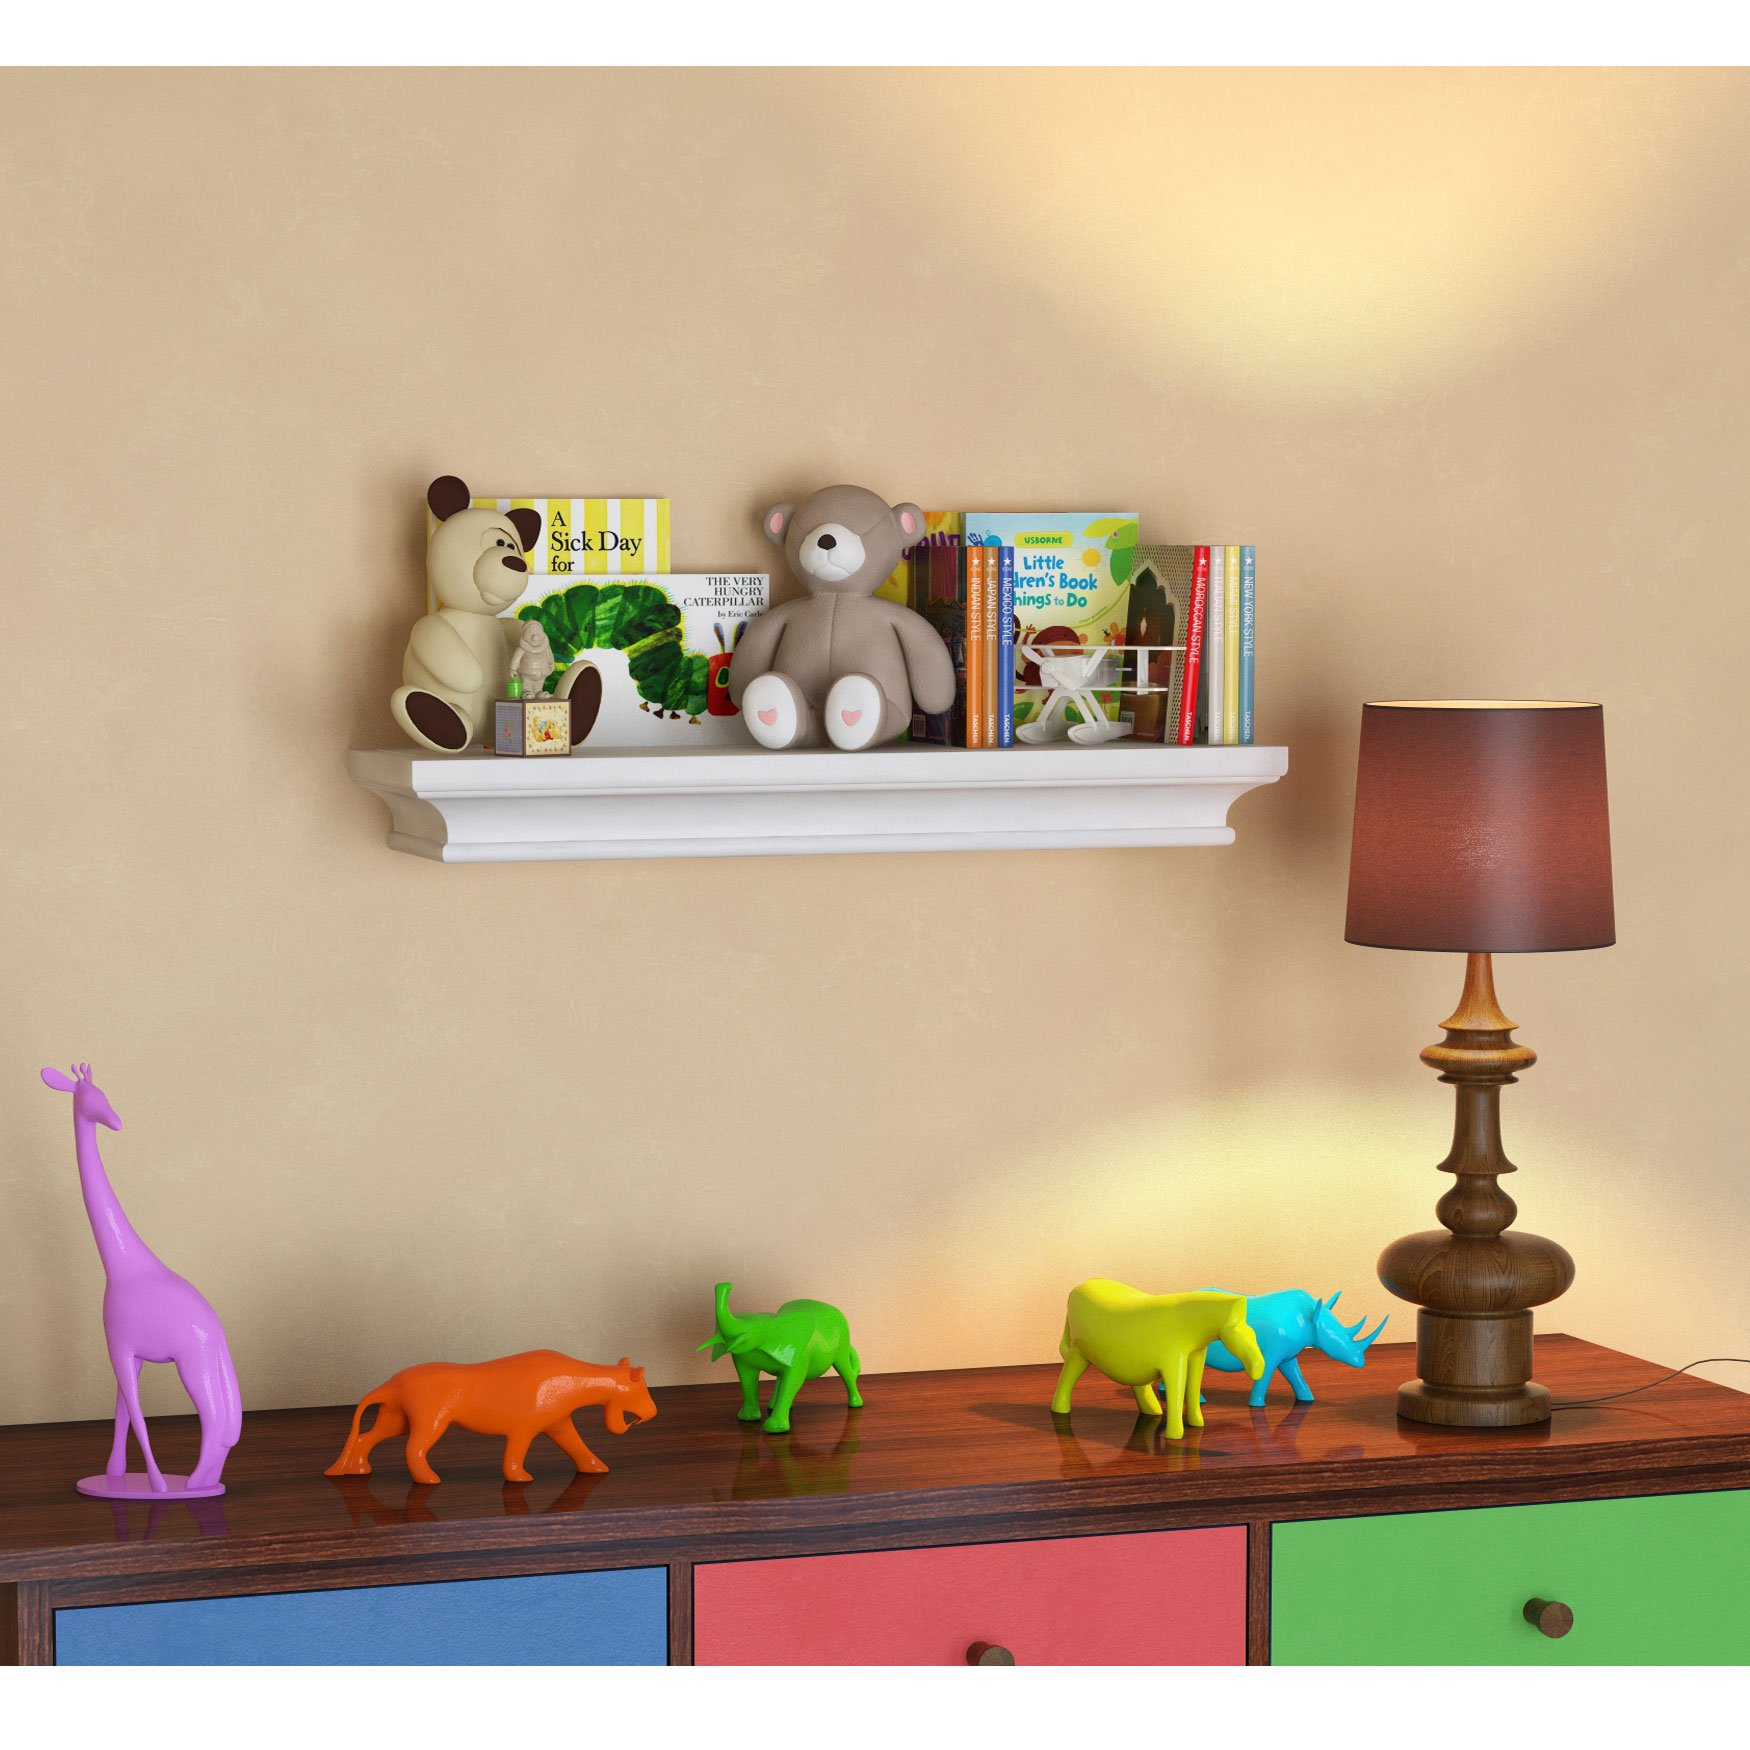 BGT White Traditional Kids Room Wall Shelf 24 x 6 Inches Children's Stylish Floating Ledge Shelf